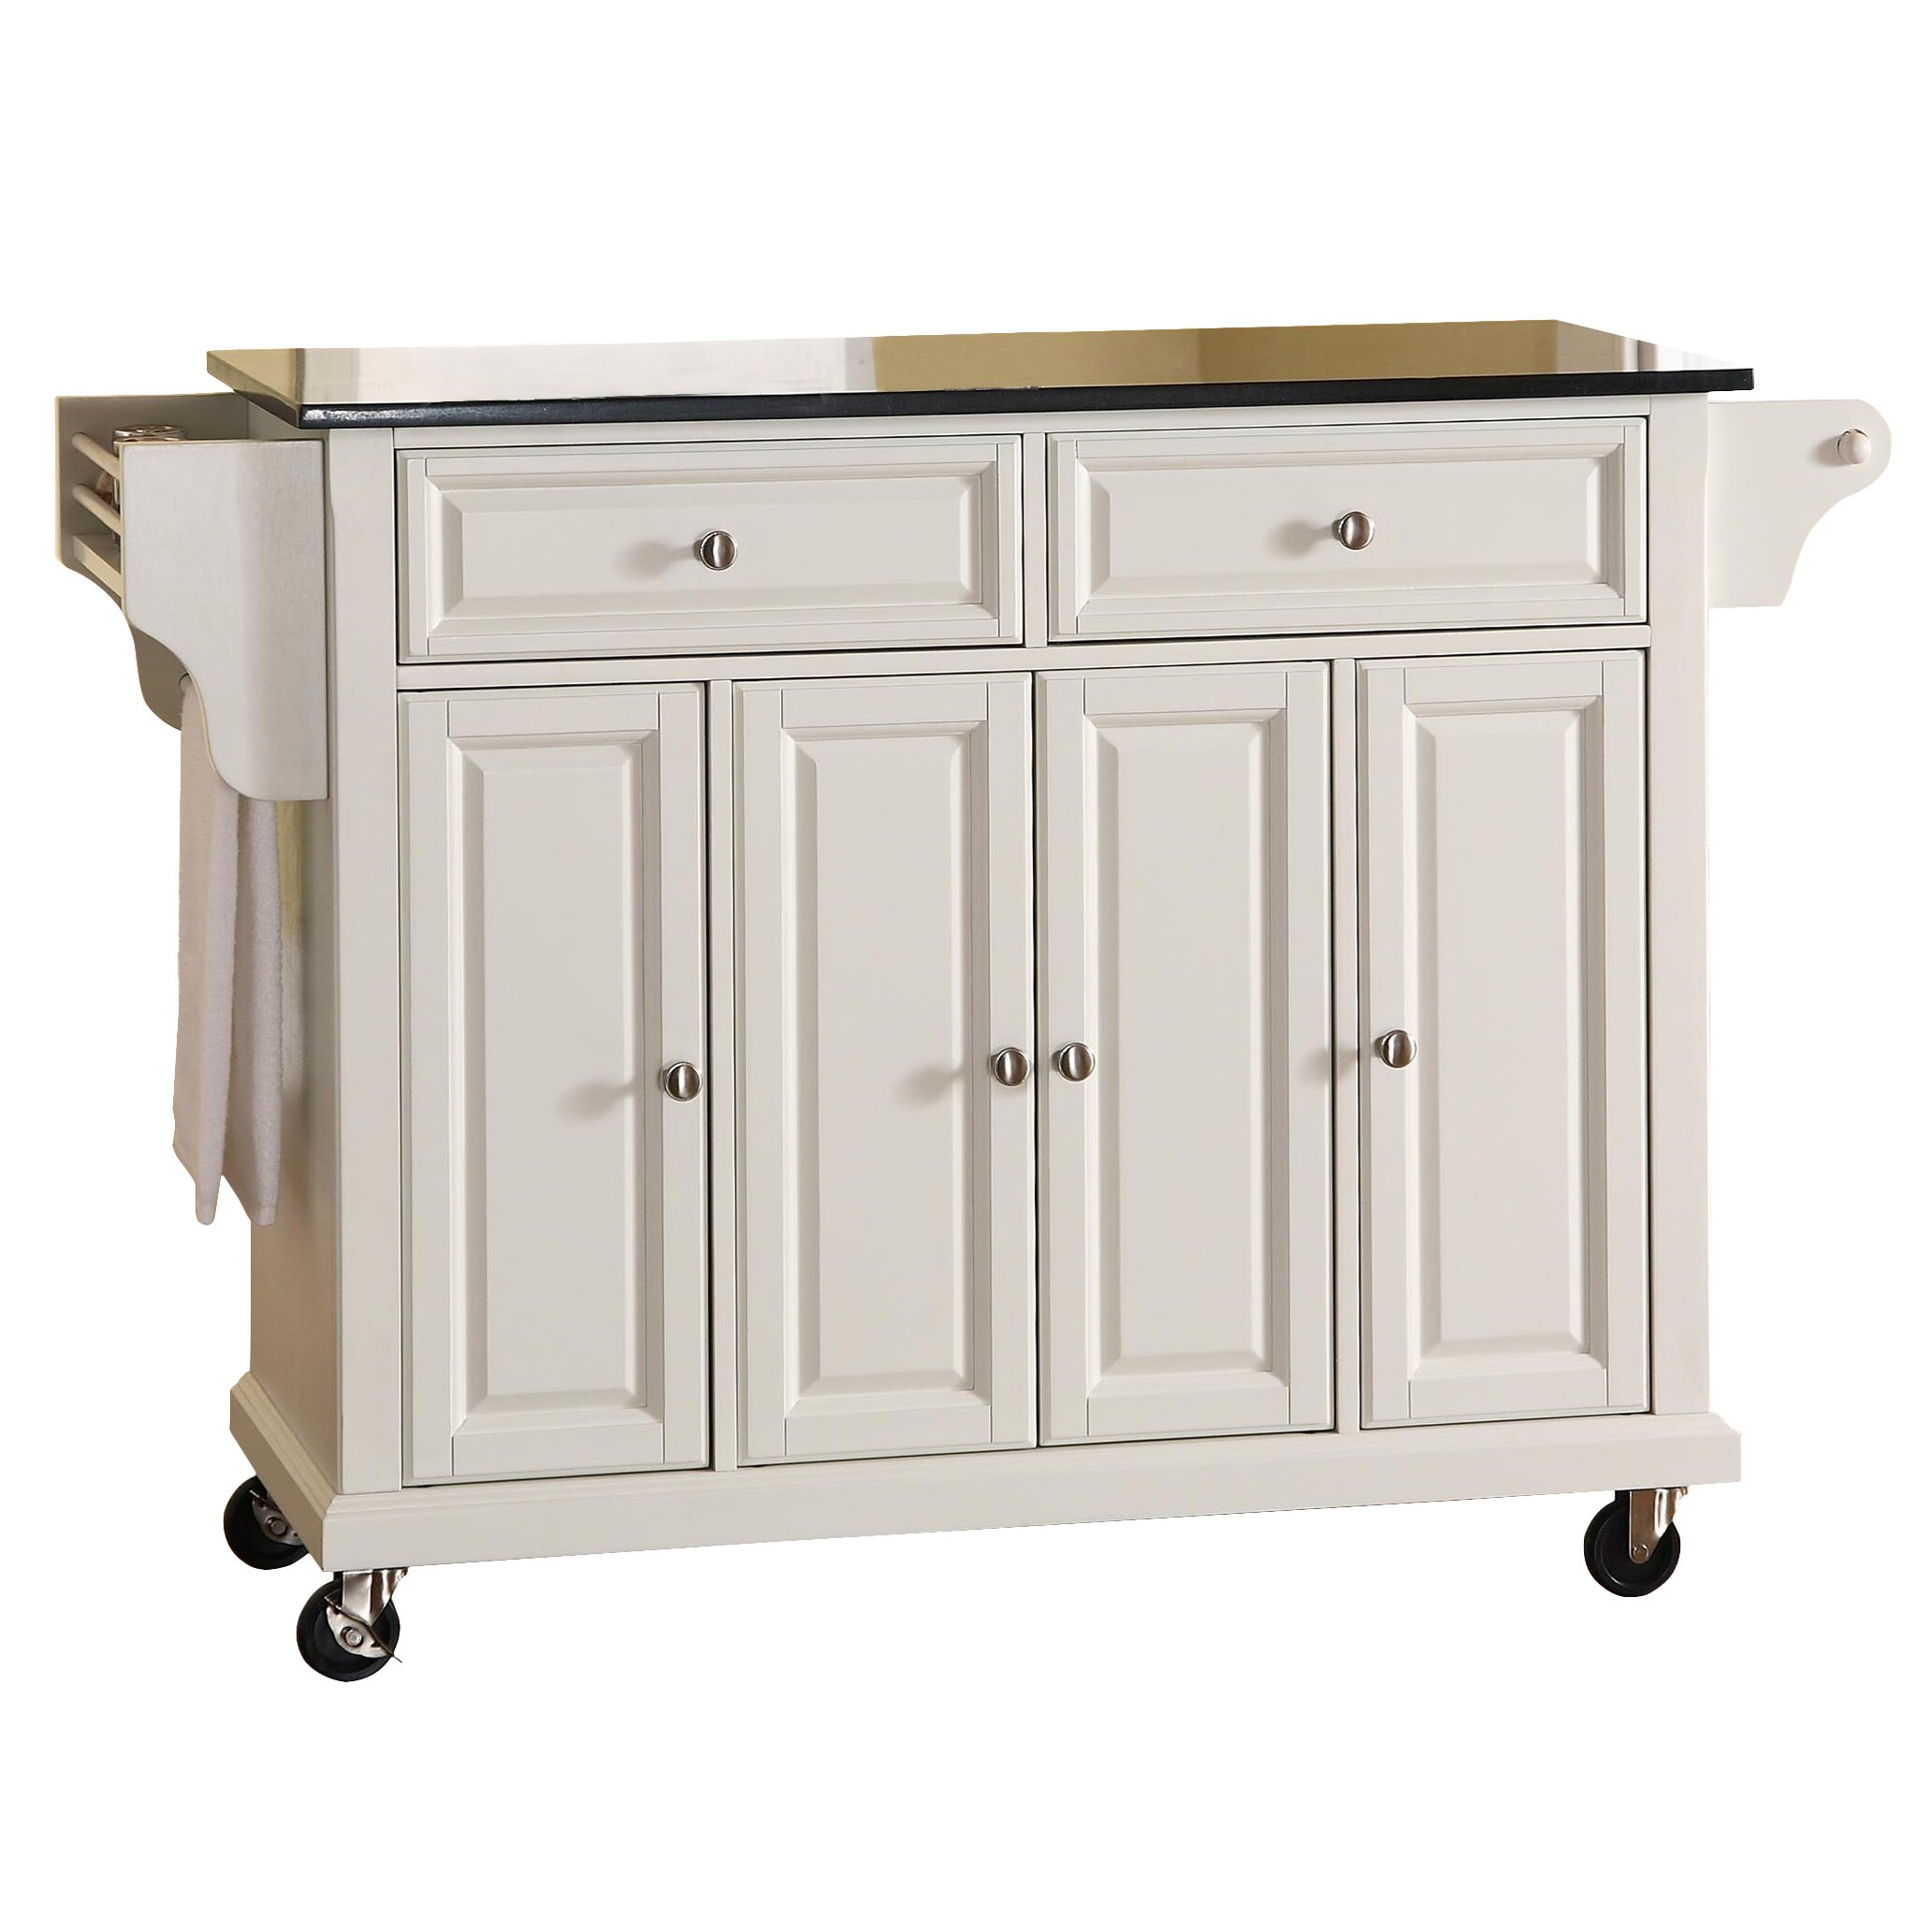 Darby Home Co Pottstown Kitchen Island with Granite Top ...